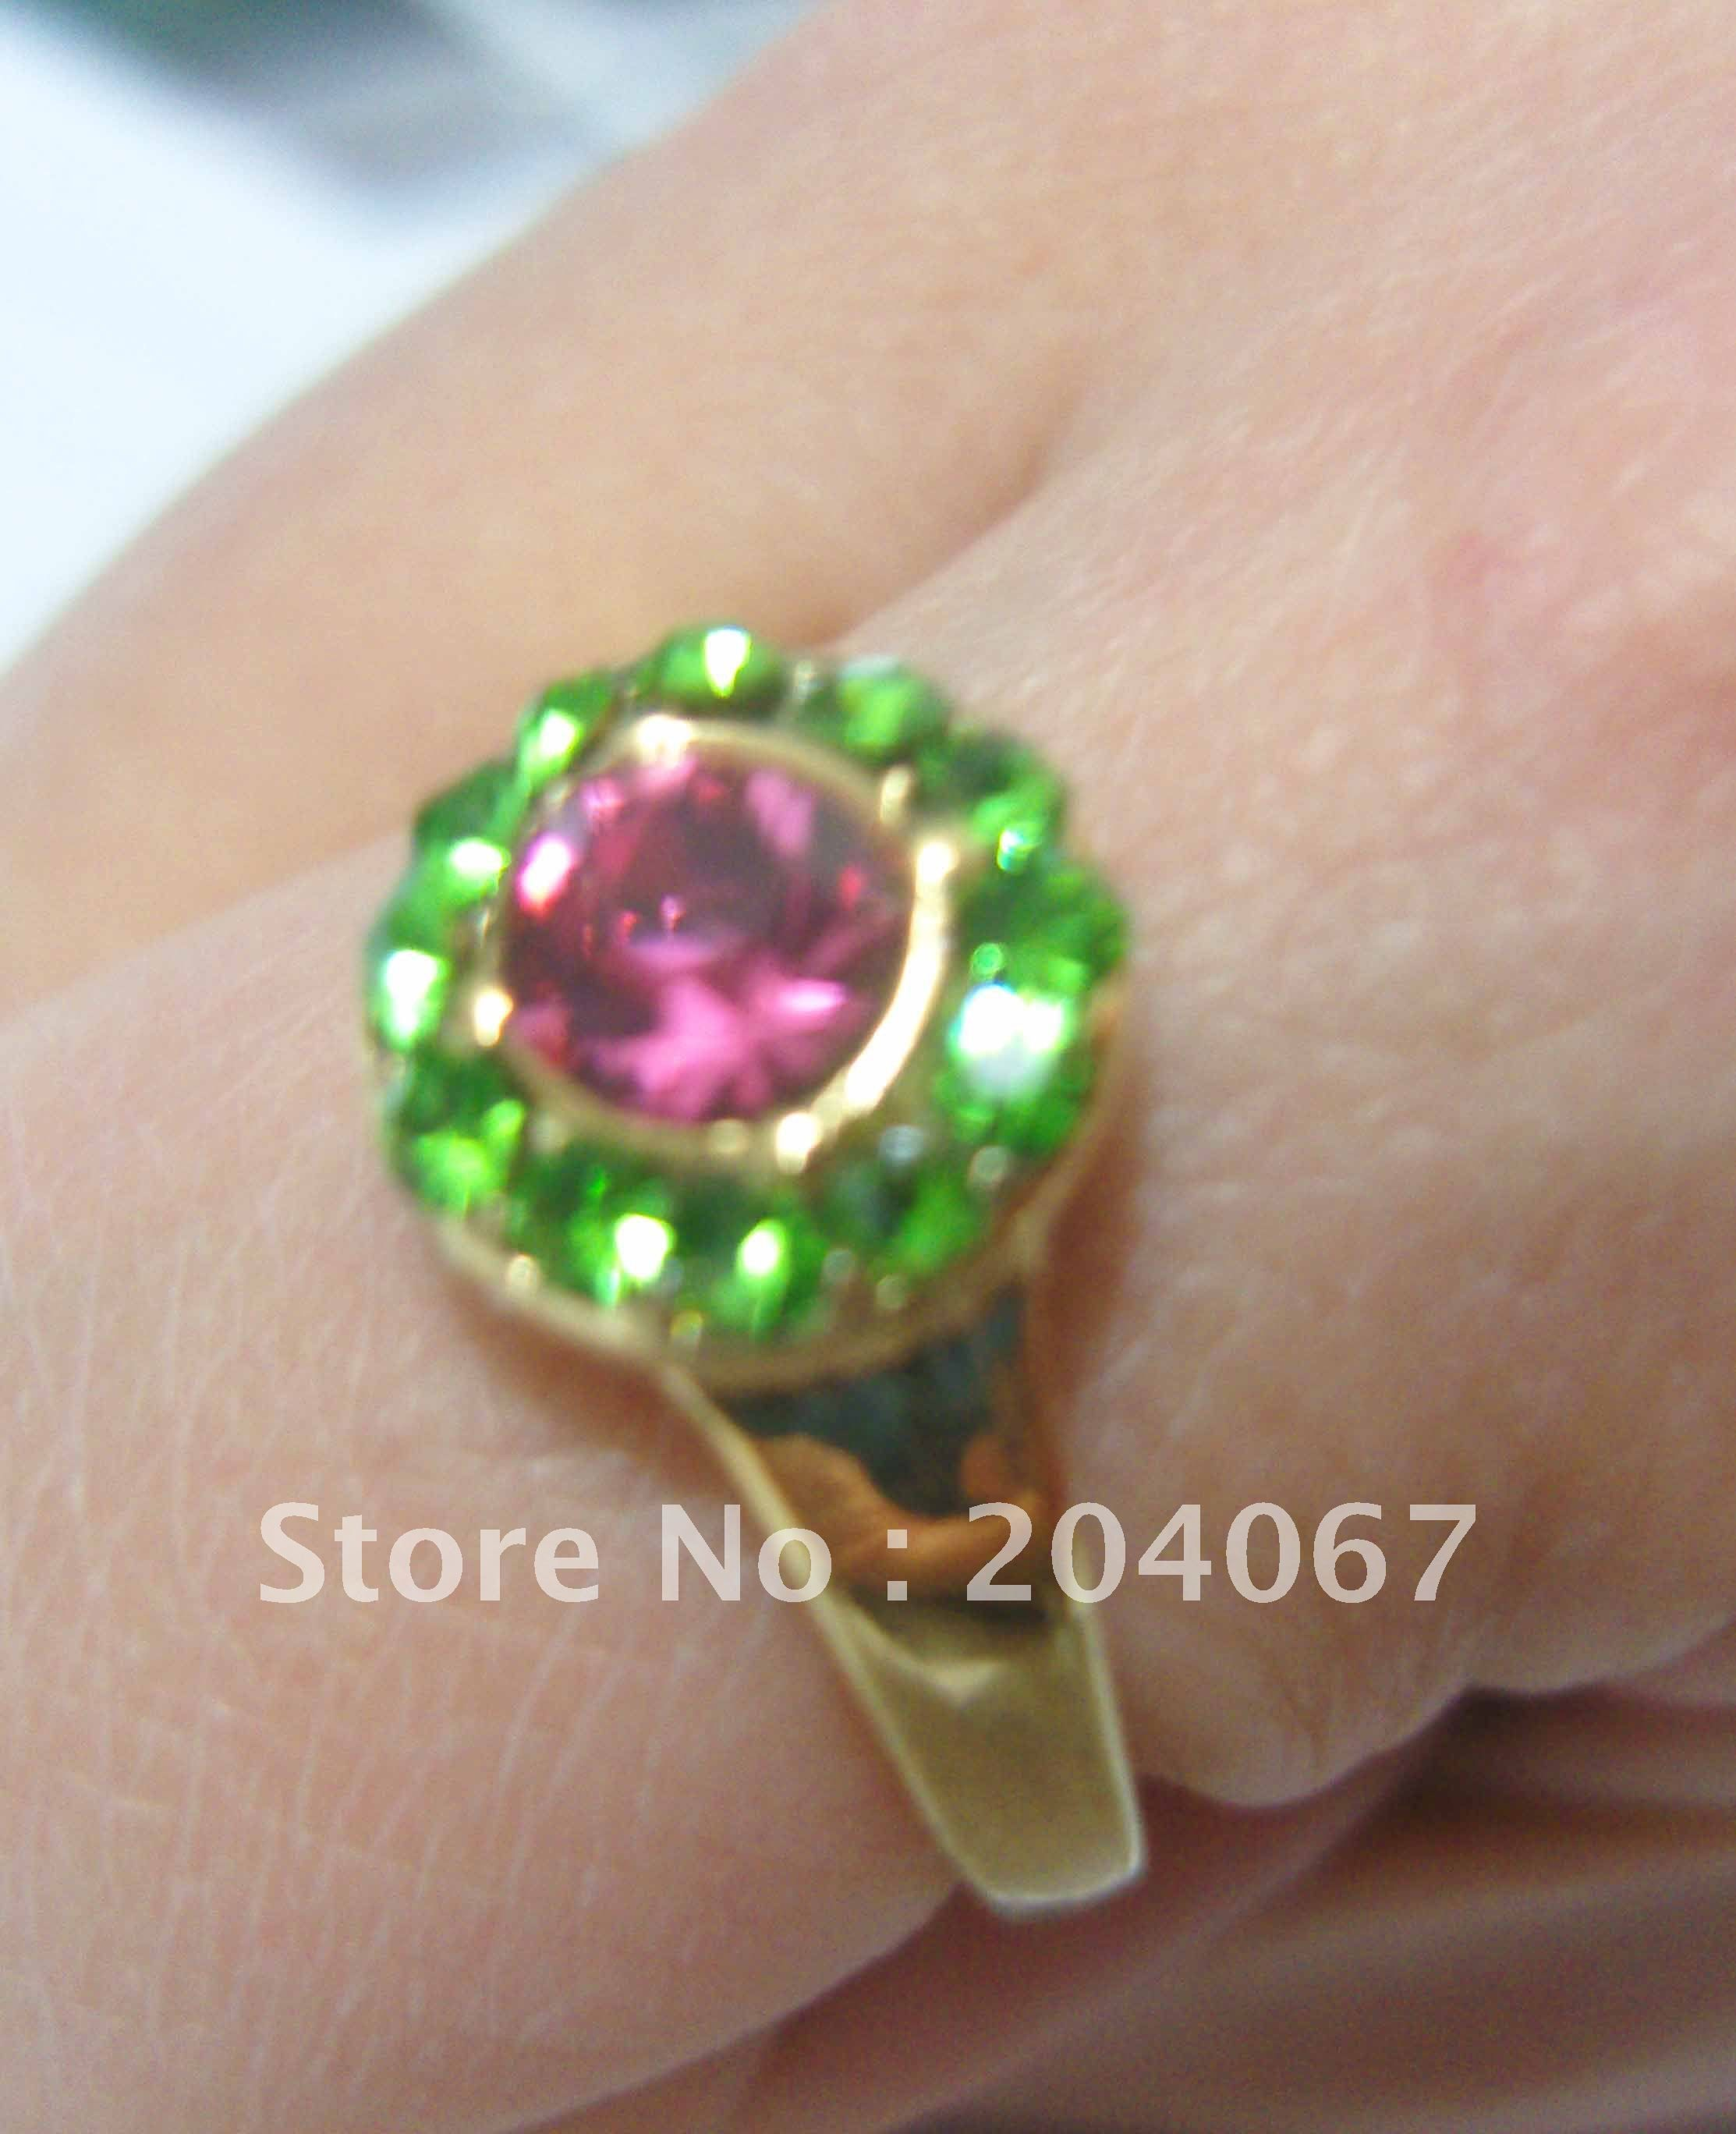 Real gold 18k ring plated for men size 9 jewlery dimond new